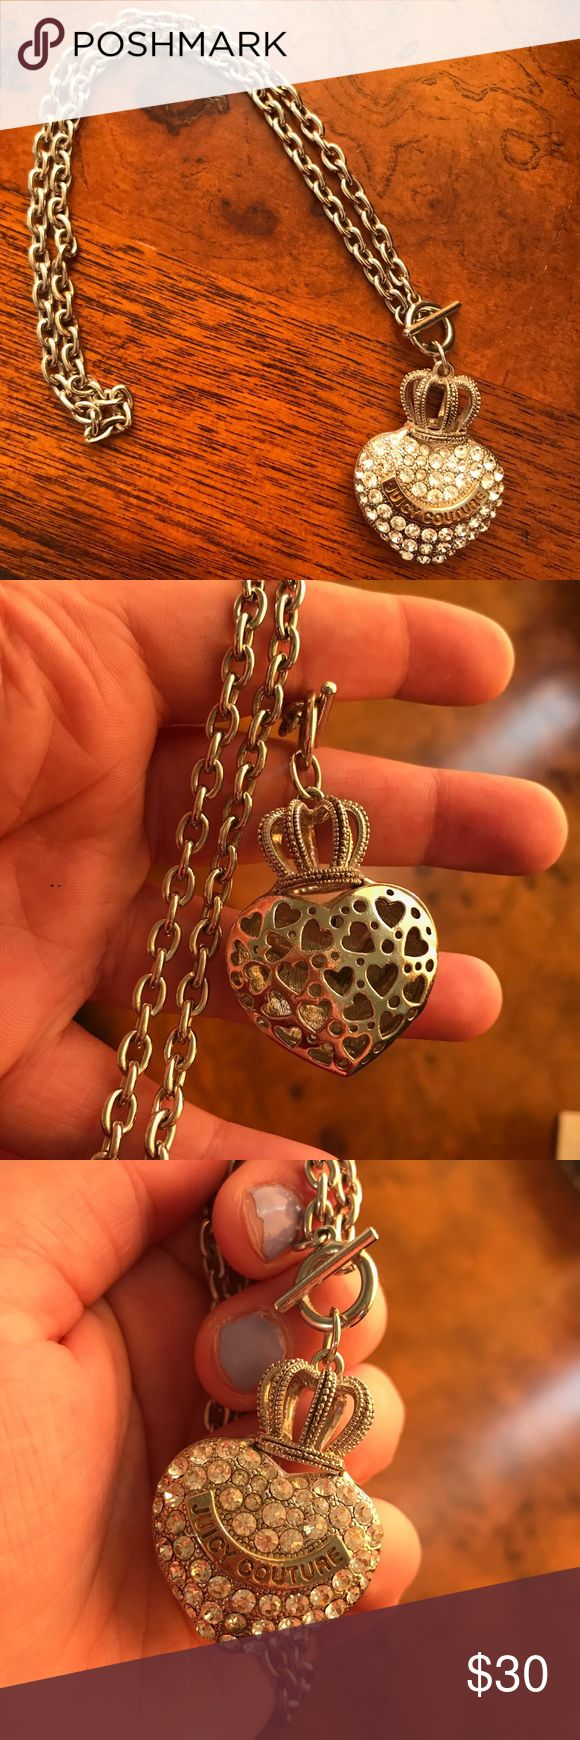 "Silver Juicy Couture Toggle Necklace A silver Juicy Couture necklace with a toggle closure. I've had it forever, but have never worn it. It has a puffed heart that says ""Juicy Couture"" across the front with pretty diamond-like gems. Juicy Couture Jewelry Necklaces"